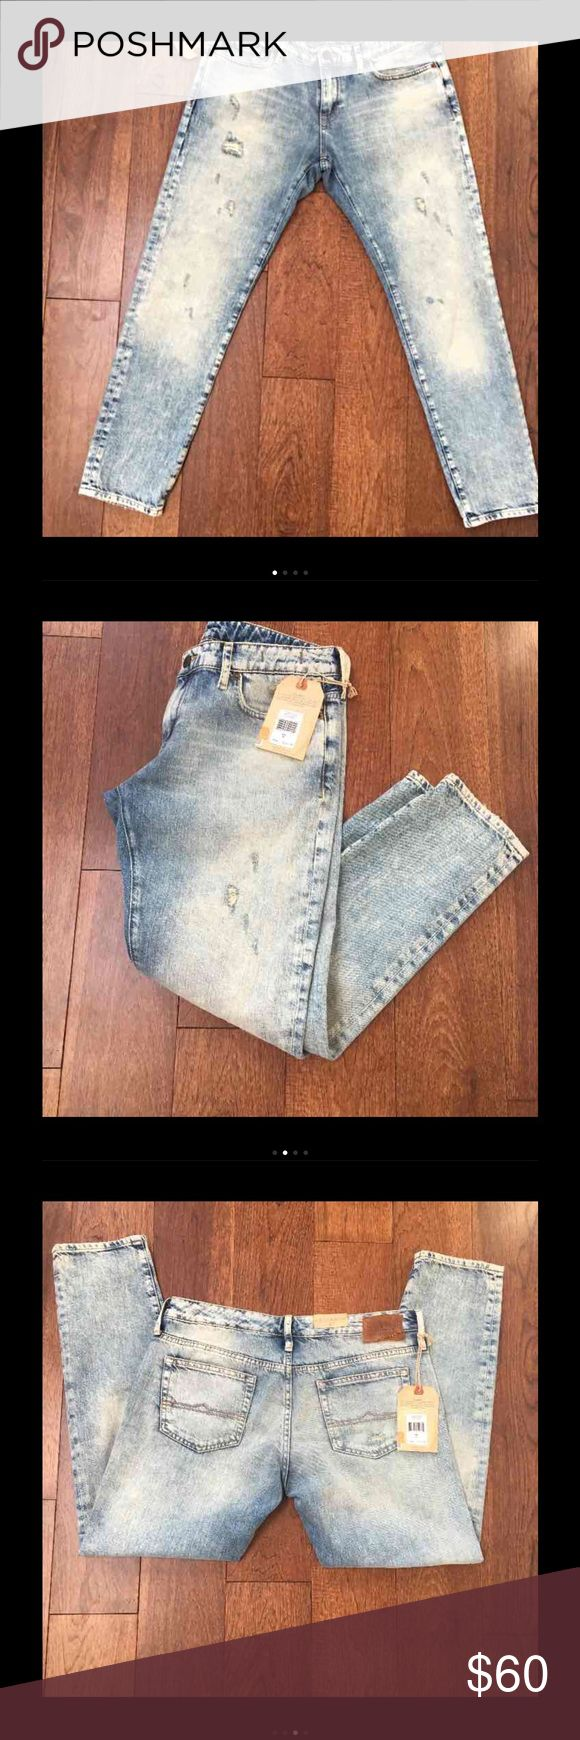 Denim and supply Ralph Lauren core blue wash jeans Denim and supply Ralph Lauren core blue wash jeans. Size 27, 28. Retail price $125. 100% cotton. Skinny boyfriend. Denim & Supply Ralph Lauren Jeans Boyfriend